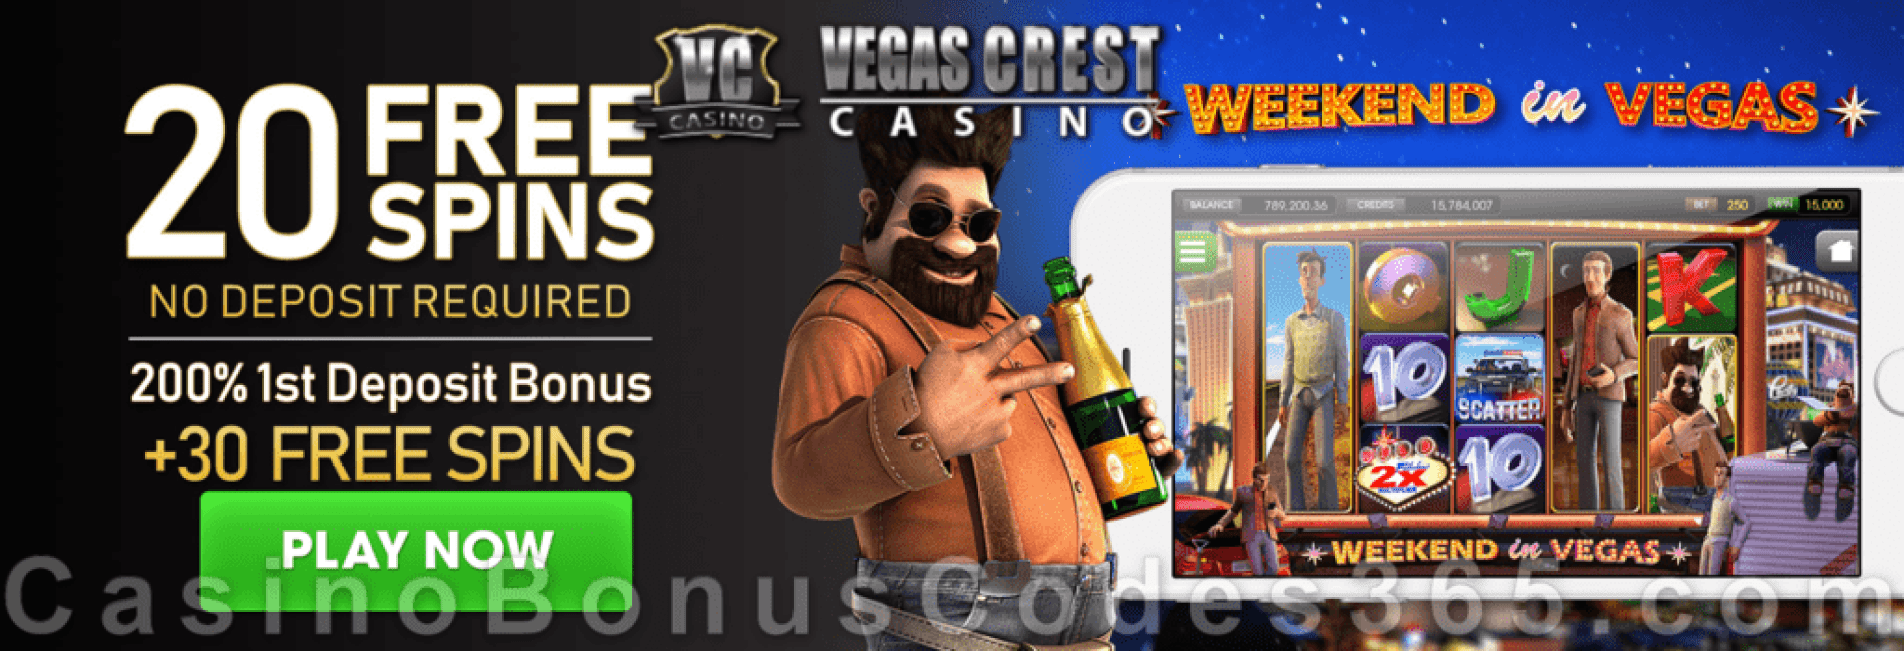 Vegas Crest Casino 20 FREE Spins on Betsoft Weekend in Vegas and 200% Match Bonus plus 30 FREE Spins Welcome Deal